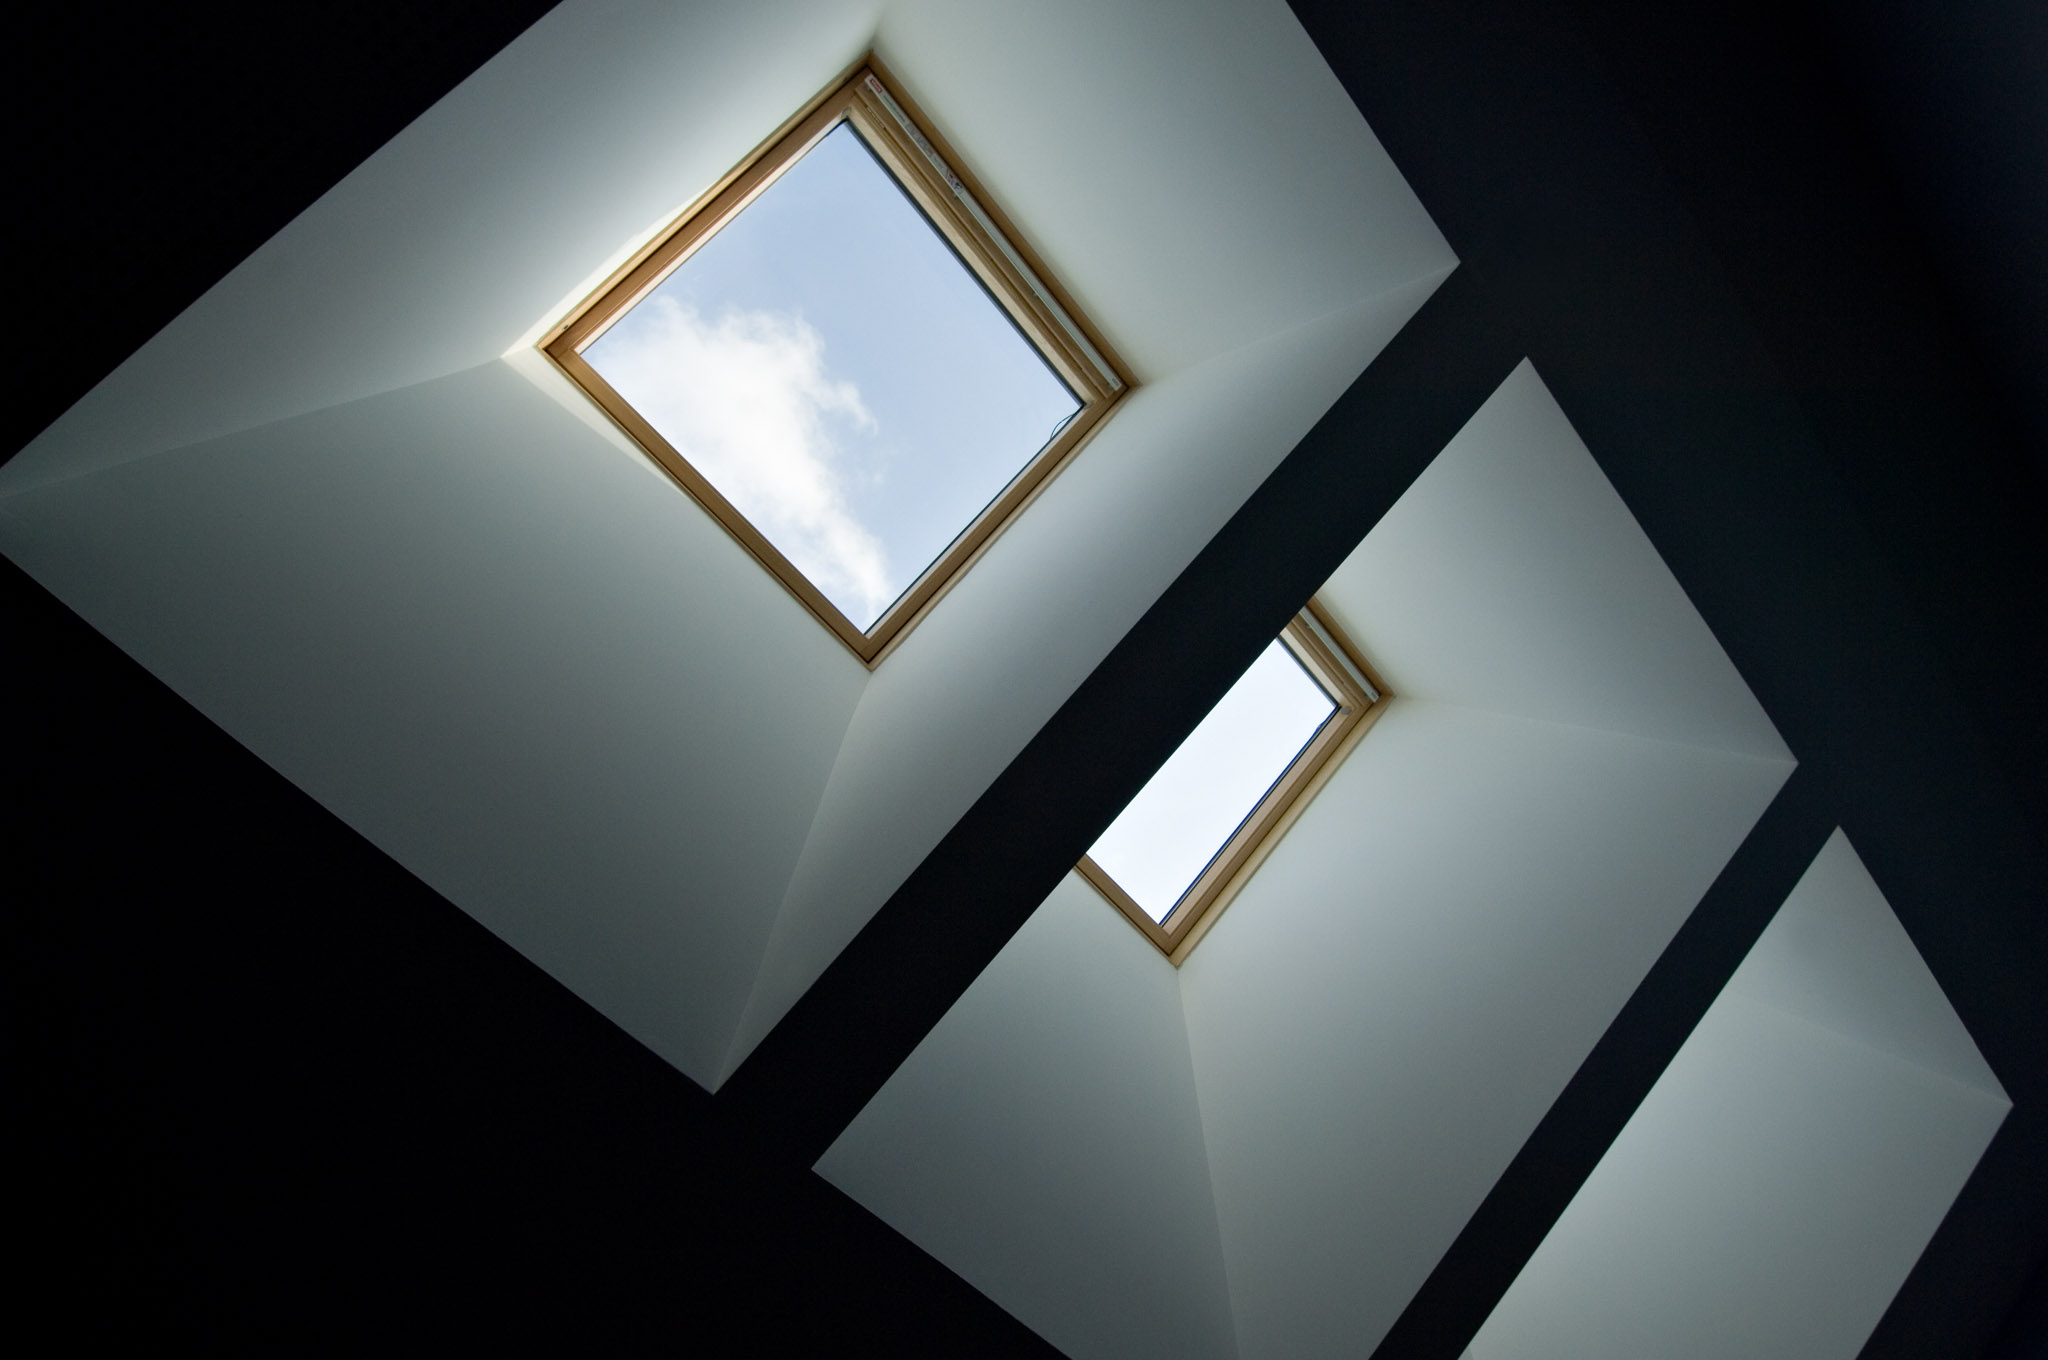 Triple Skylight Abstract 02